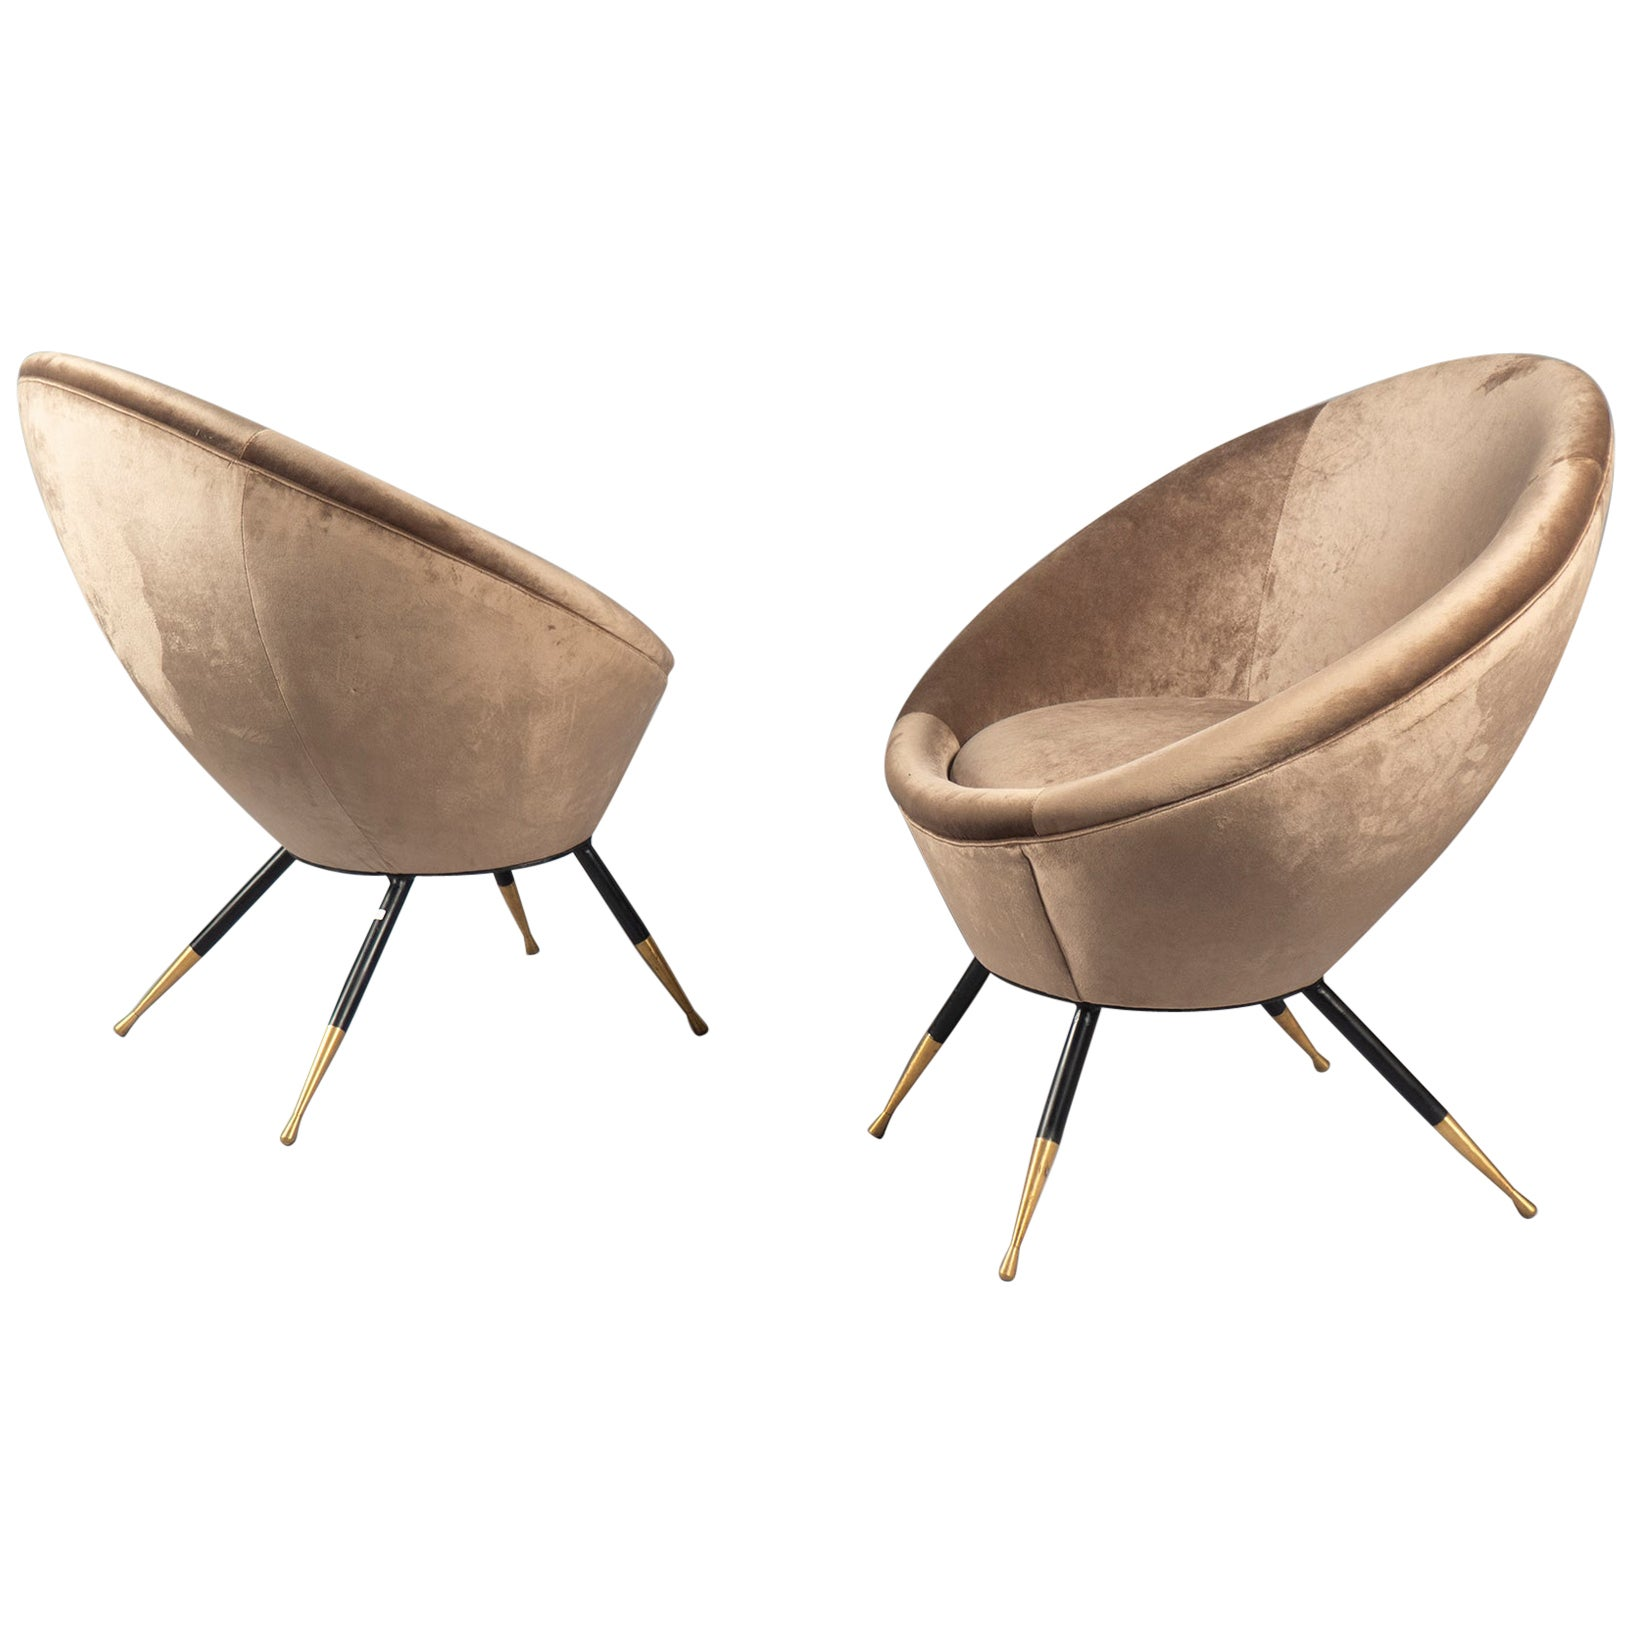 Pair of Chairs, Italy, 1960s